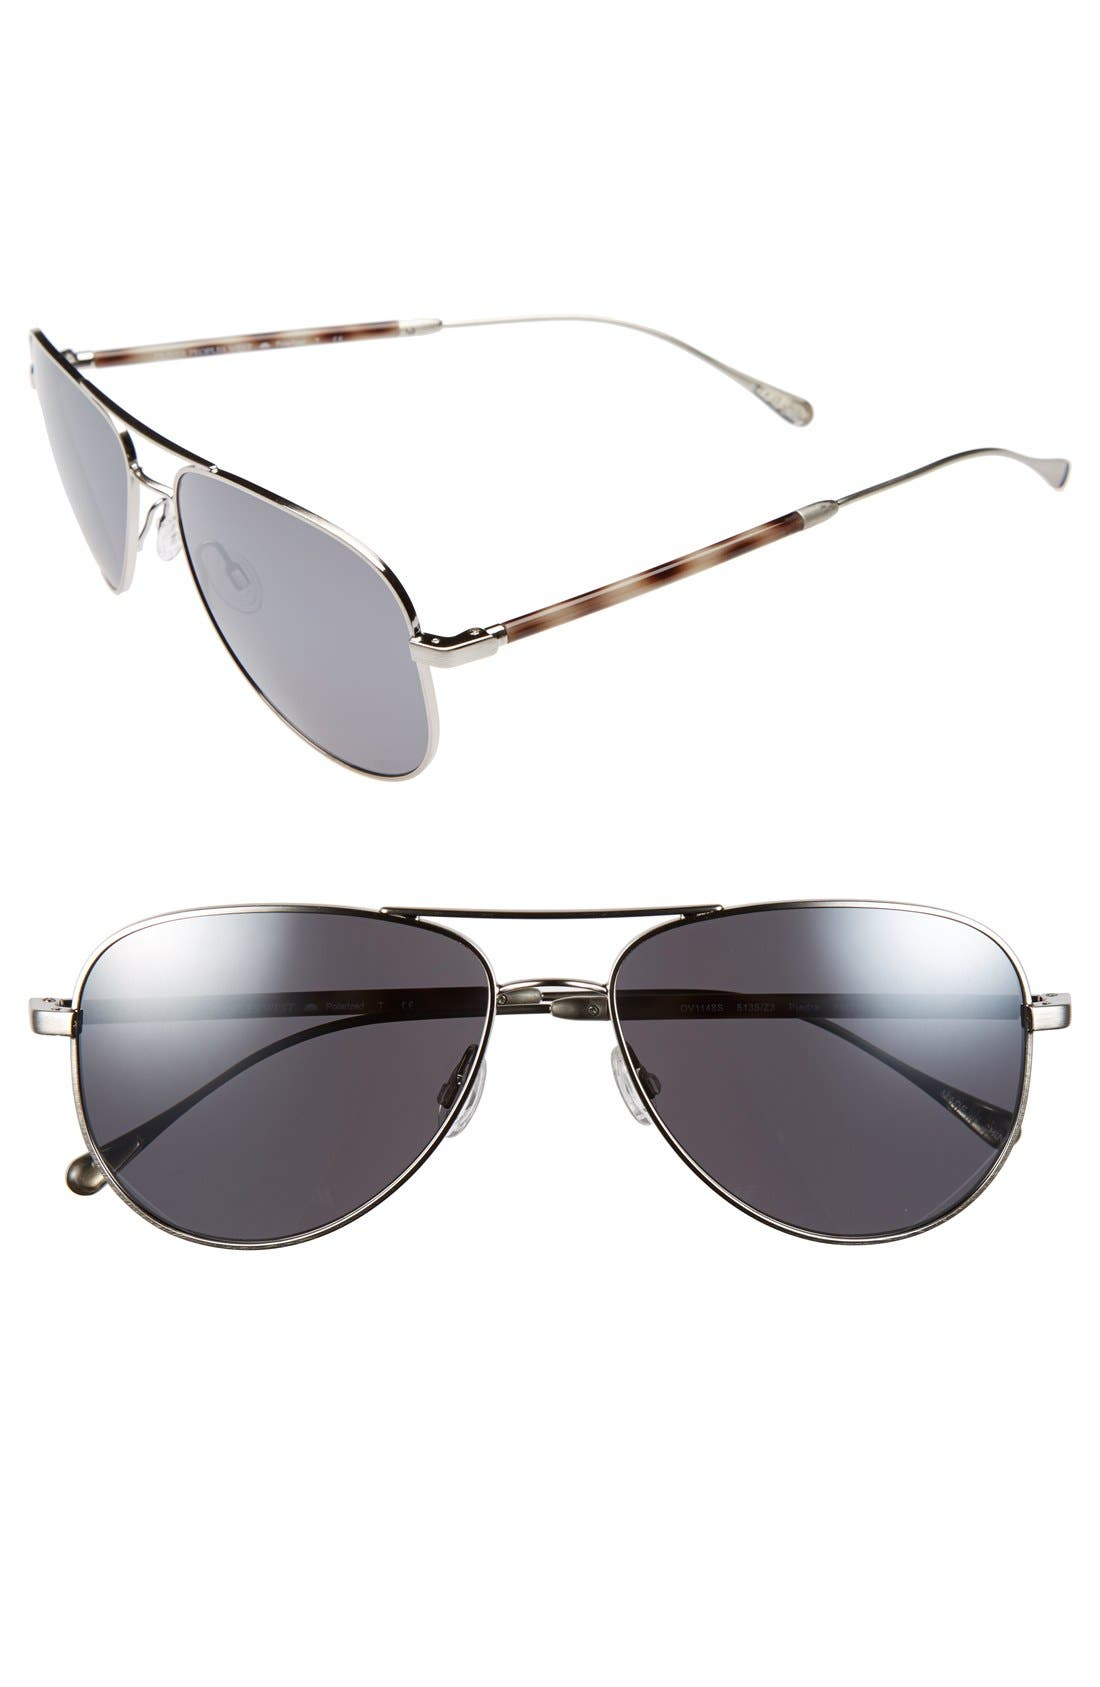 Alternate Image 1 Selected - Oliver Peoples West 'Piedra' 58mm Polarized Sunglasses